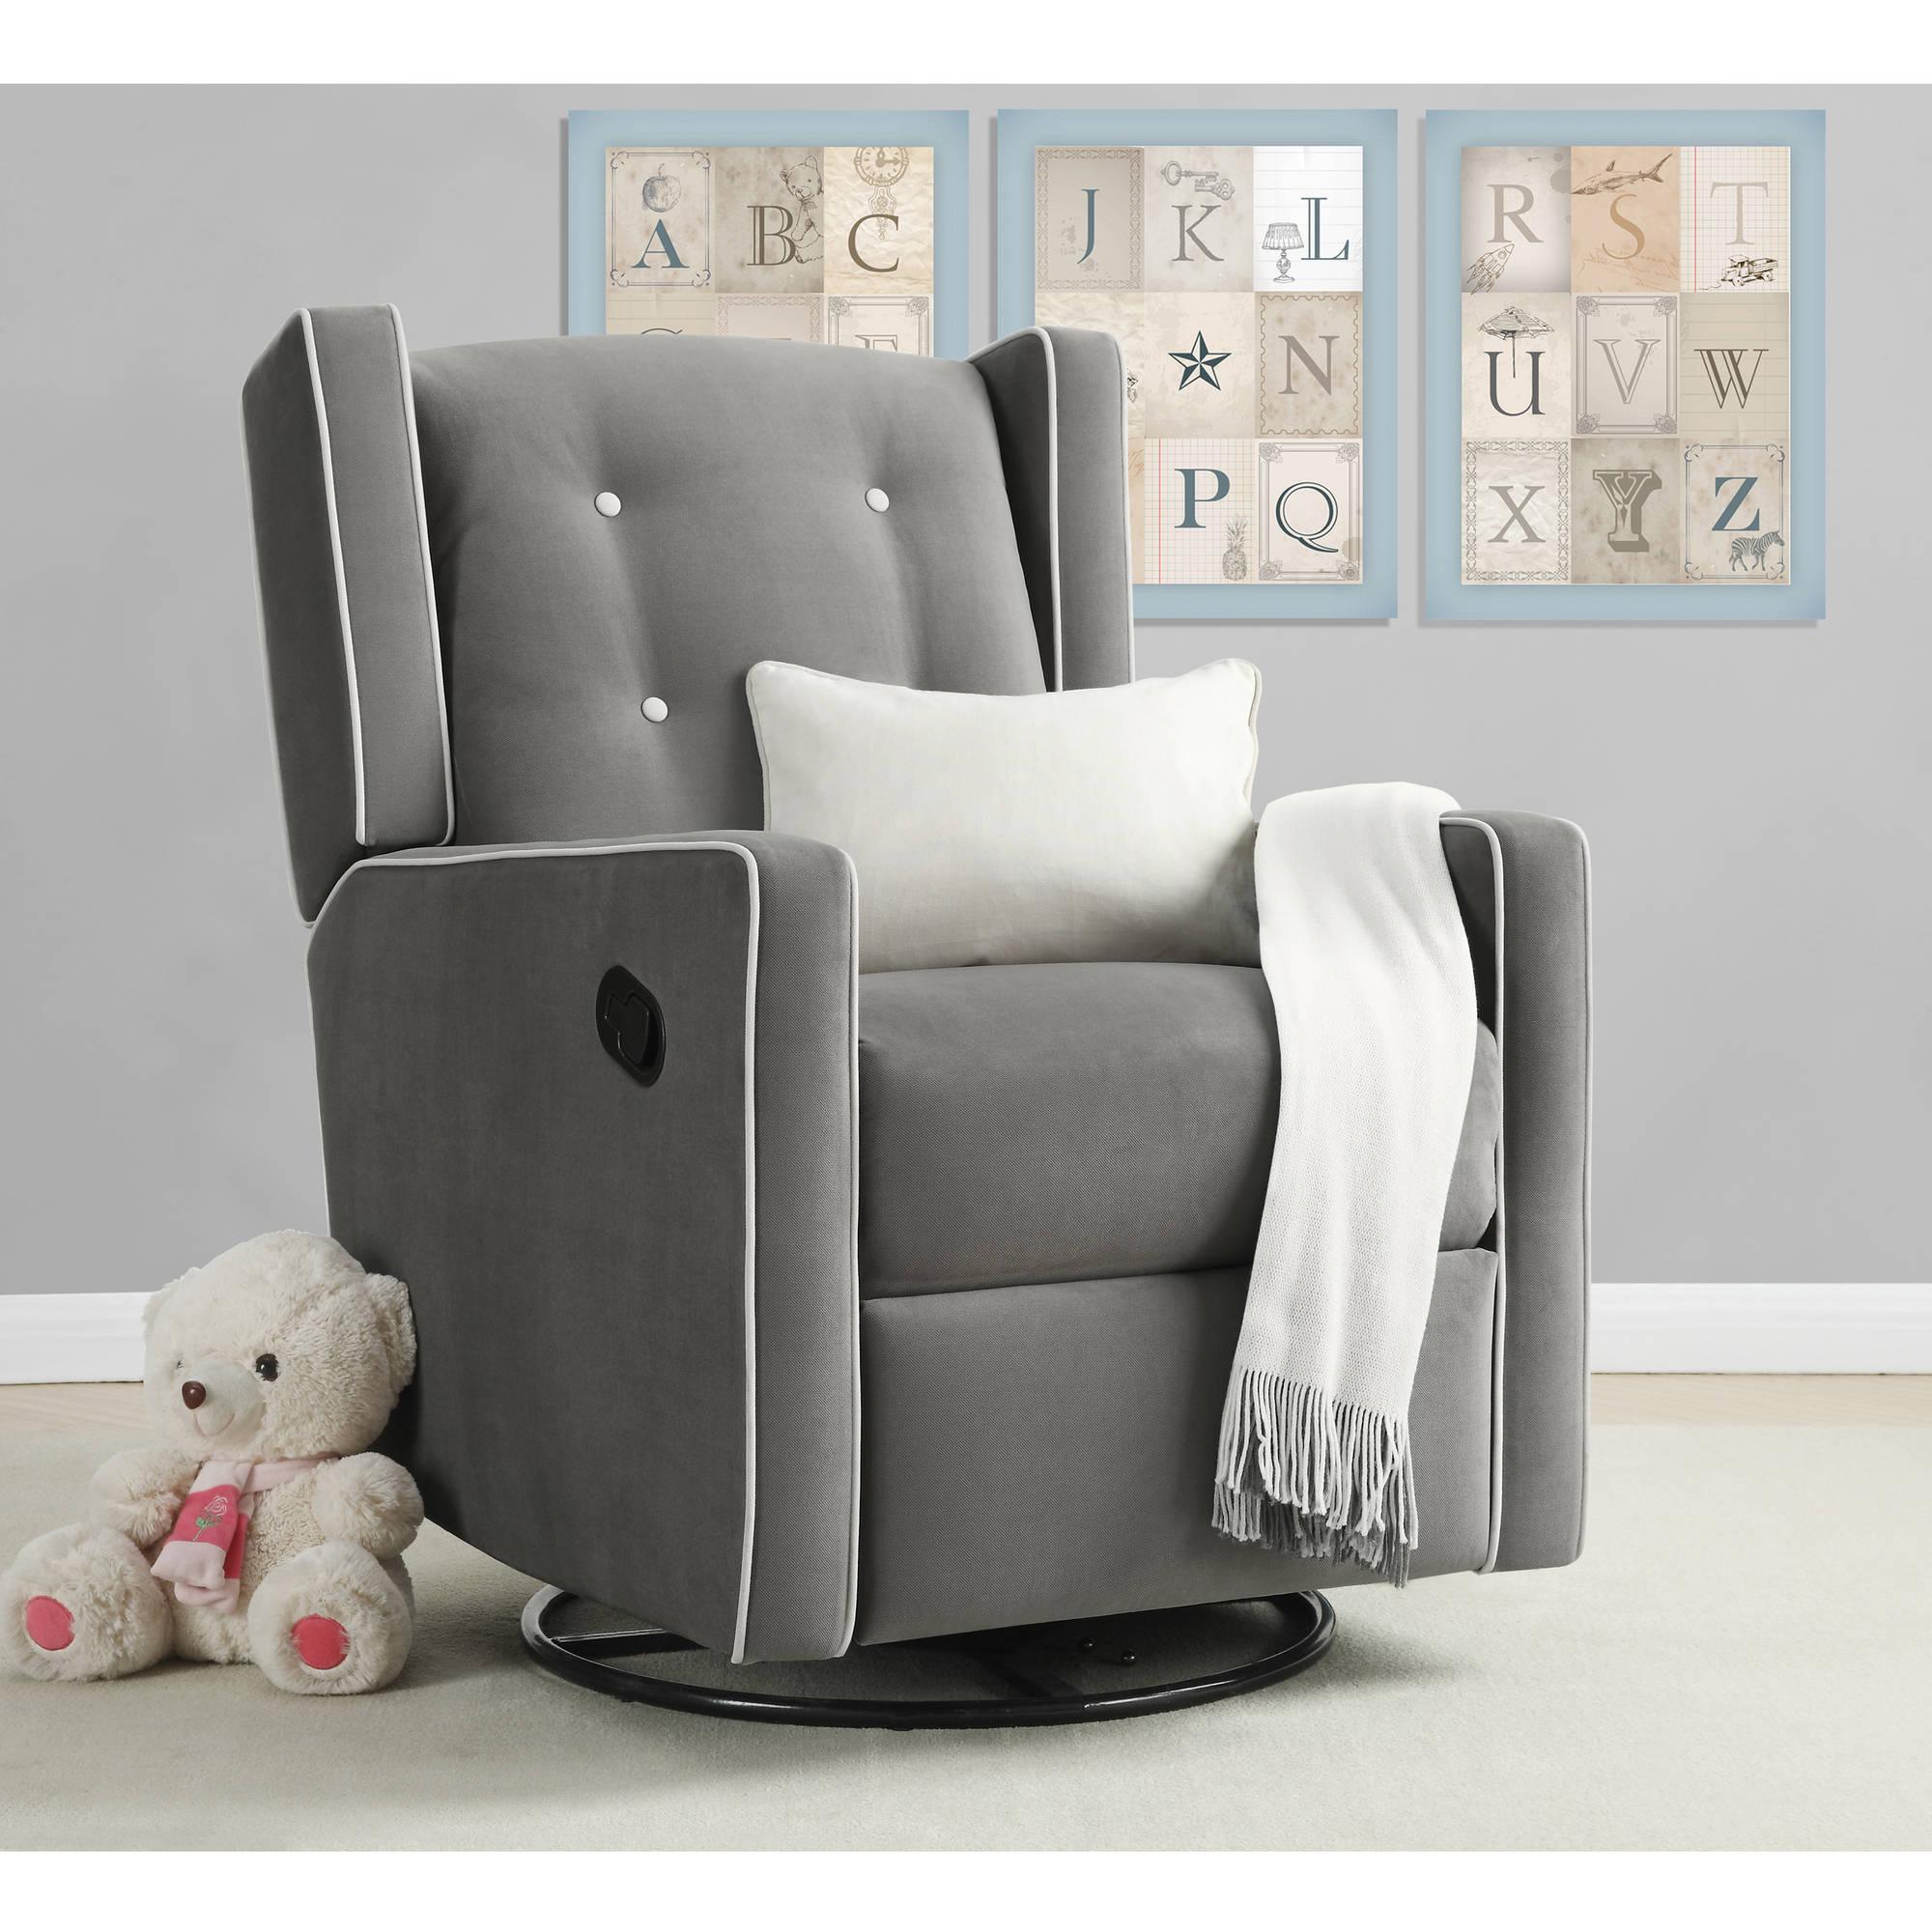 Baby Relax Mikayla Swivel Gliding Recliner, Choose Your Color